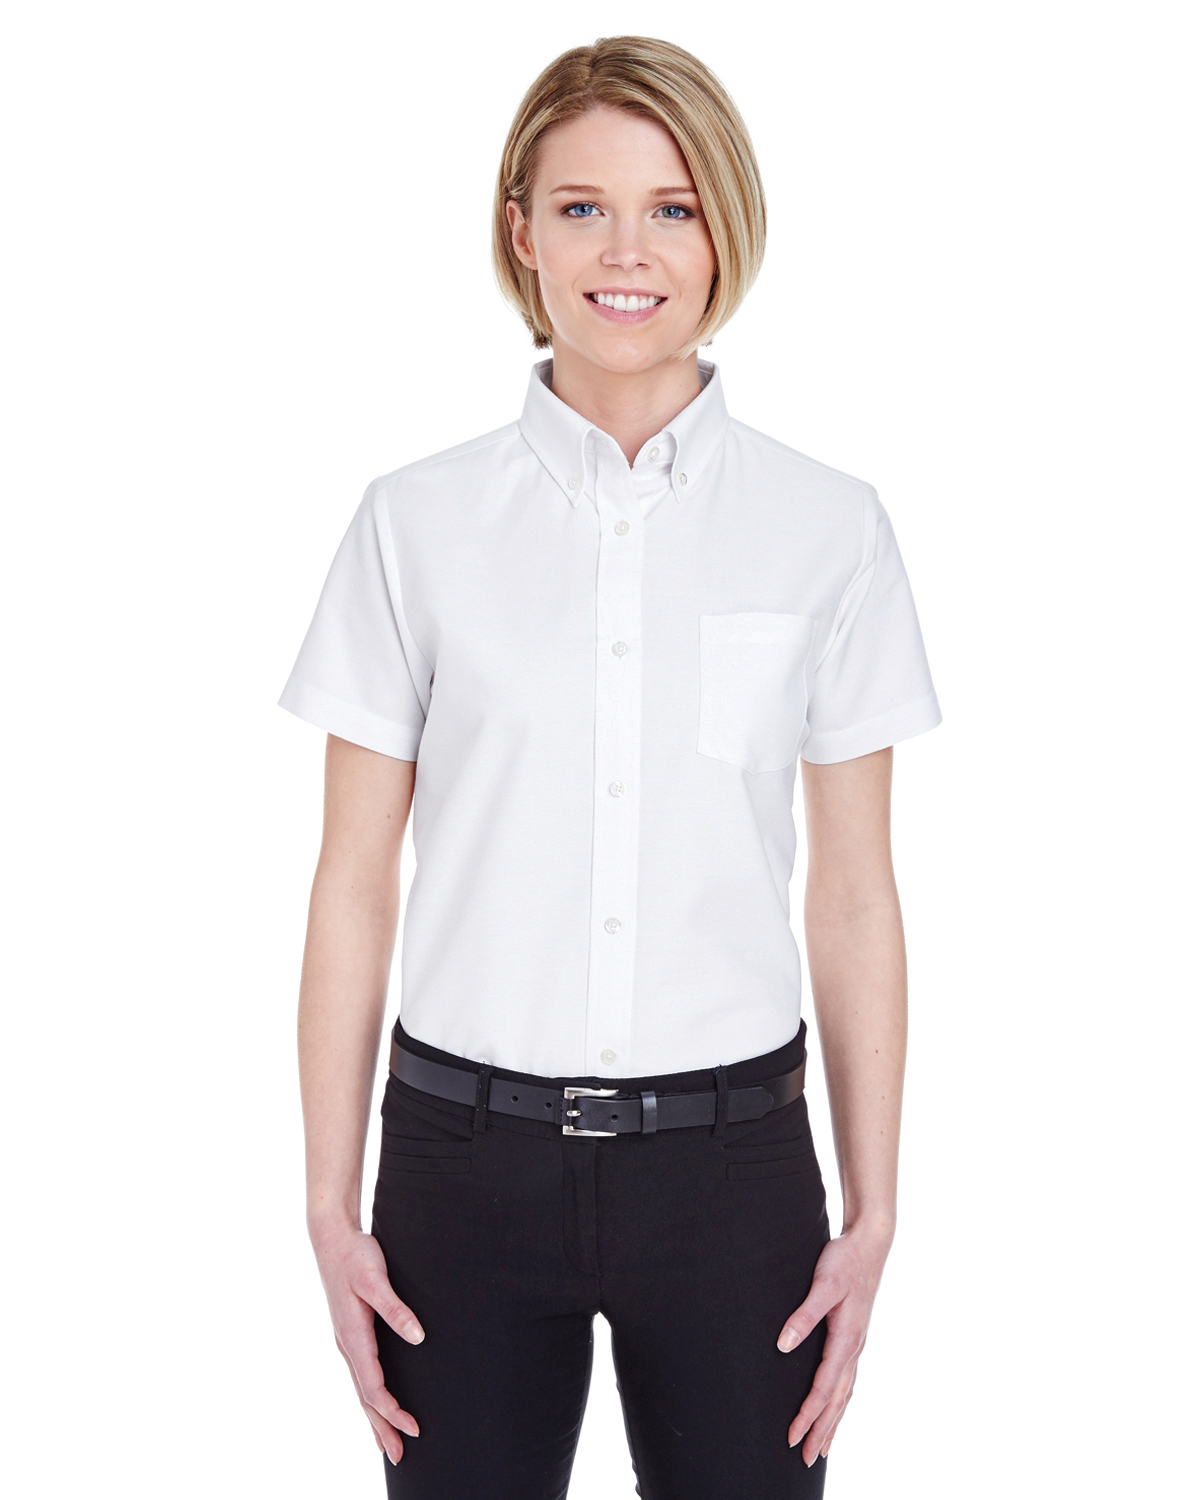 8973 UltraClub Ladies' Classic Wrinkle-Free Short-Sleeve ...